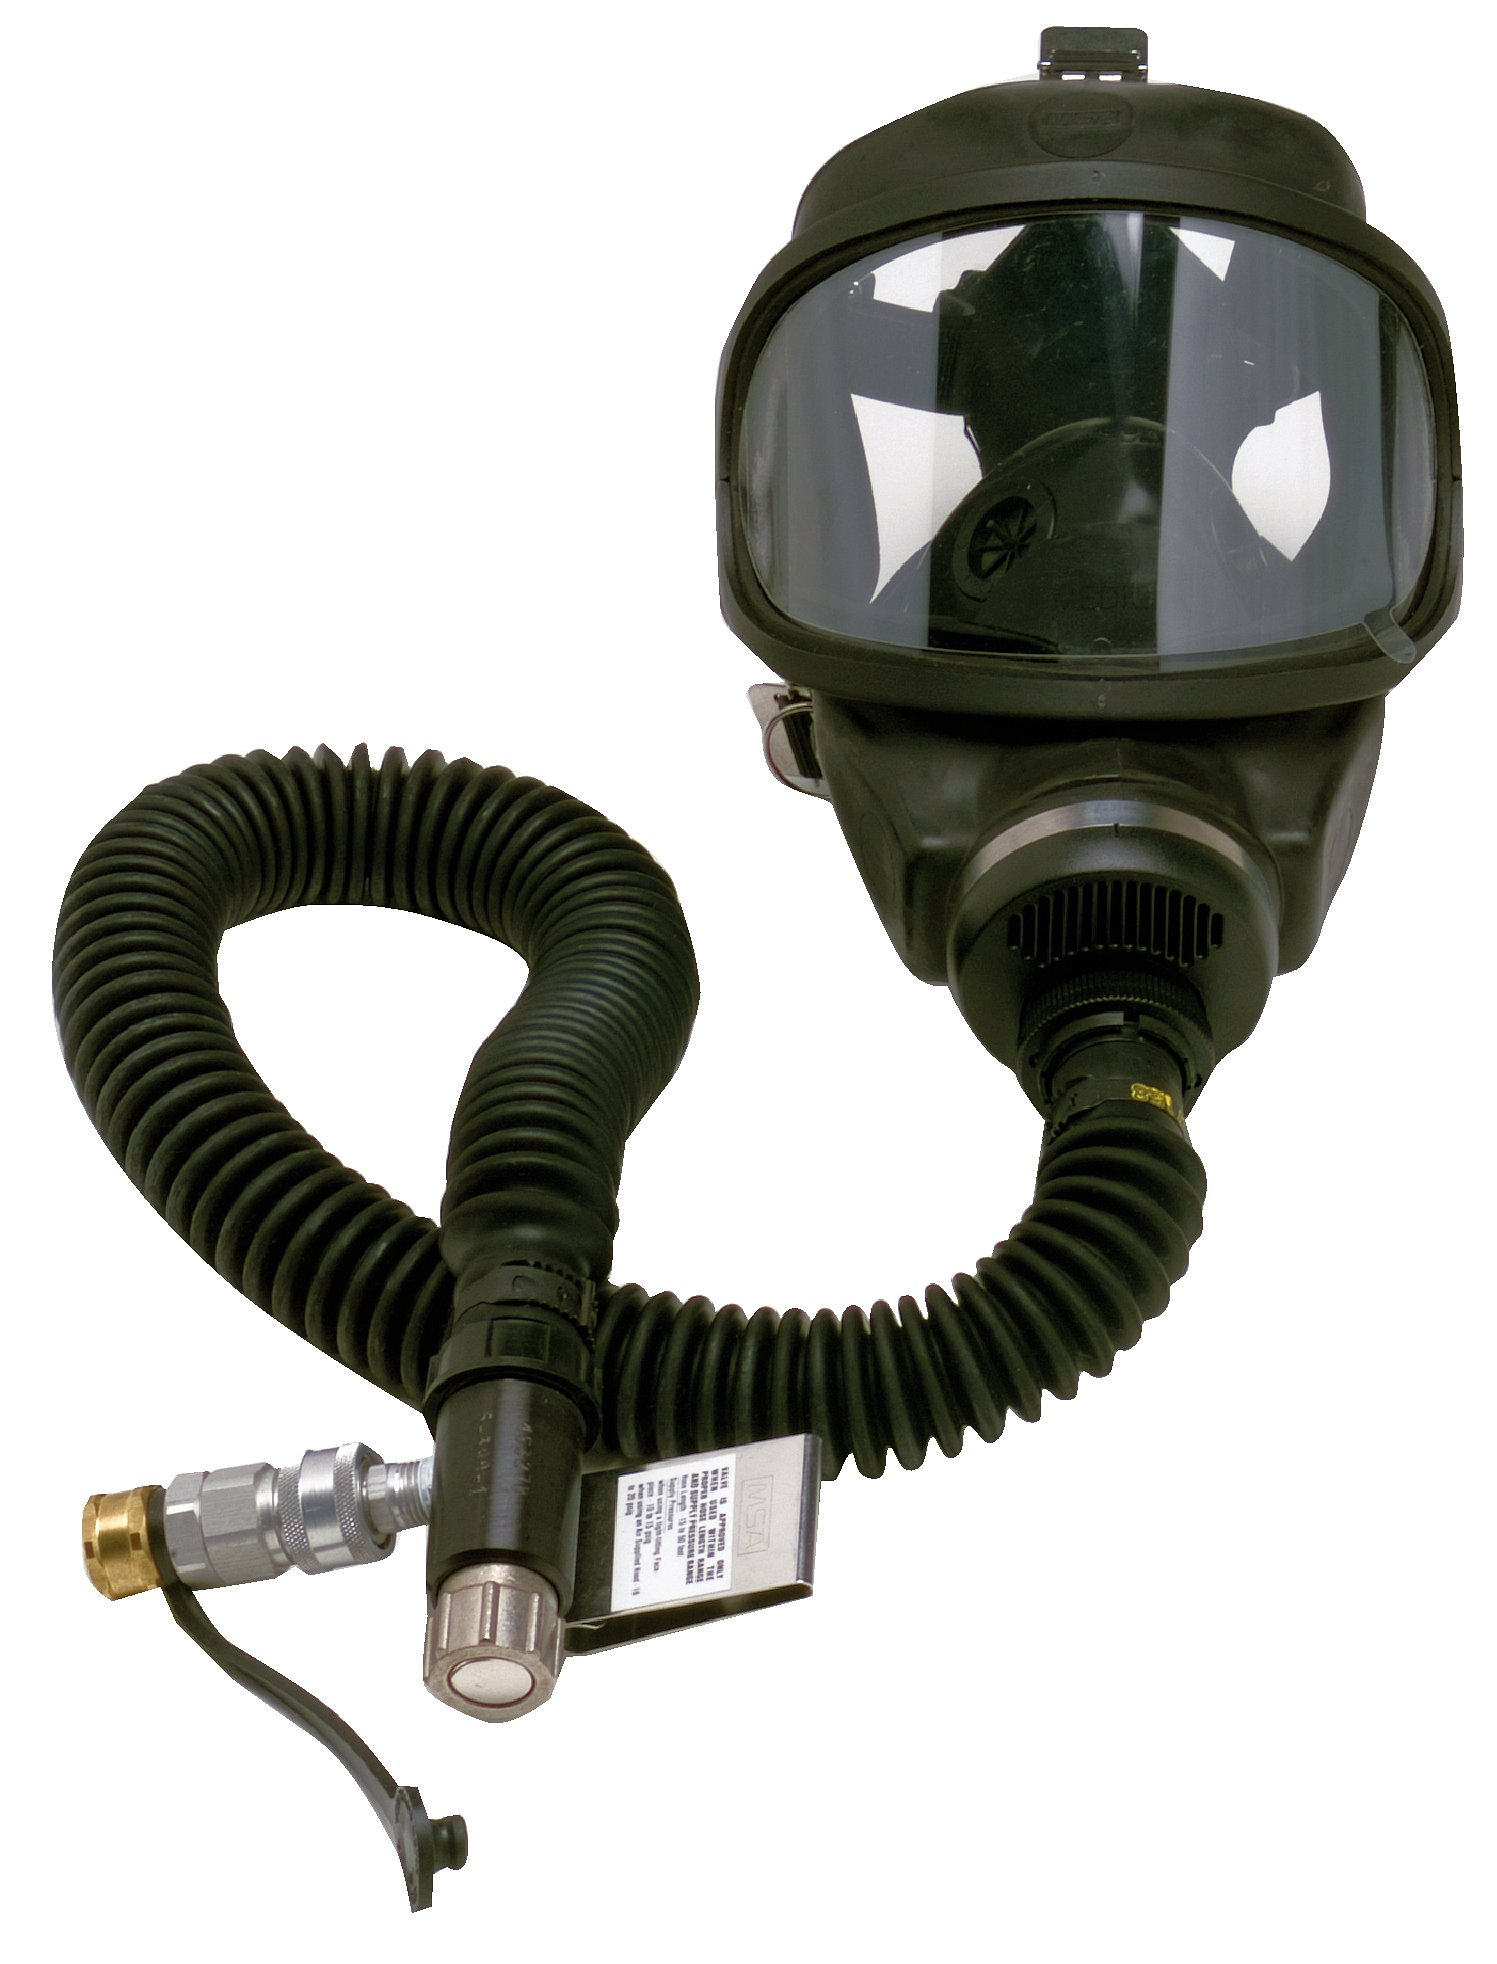 MSA Safety 810829 Constant Flow Air-Line Respirator Complete Assembly with Ultra Elite Facepiece and Snap-Tite Aluminum Quick-Disconnect, 35 psig - 40 psig Inlet Pressure